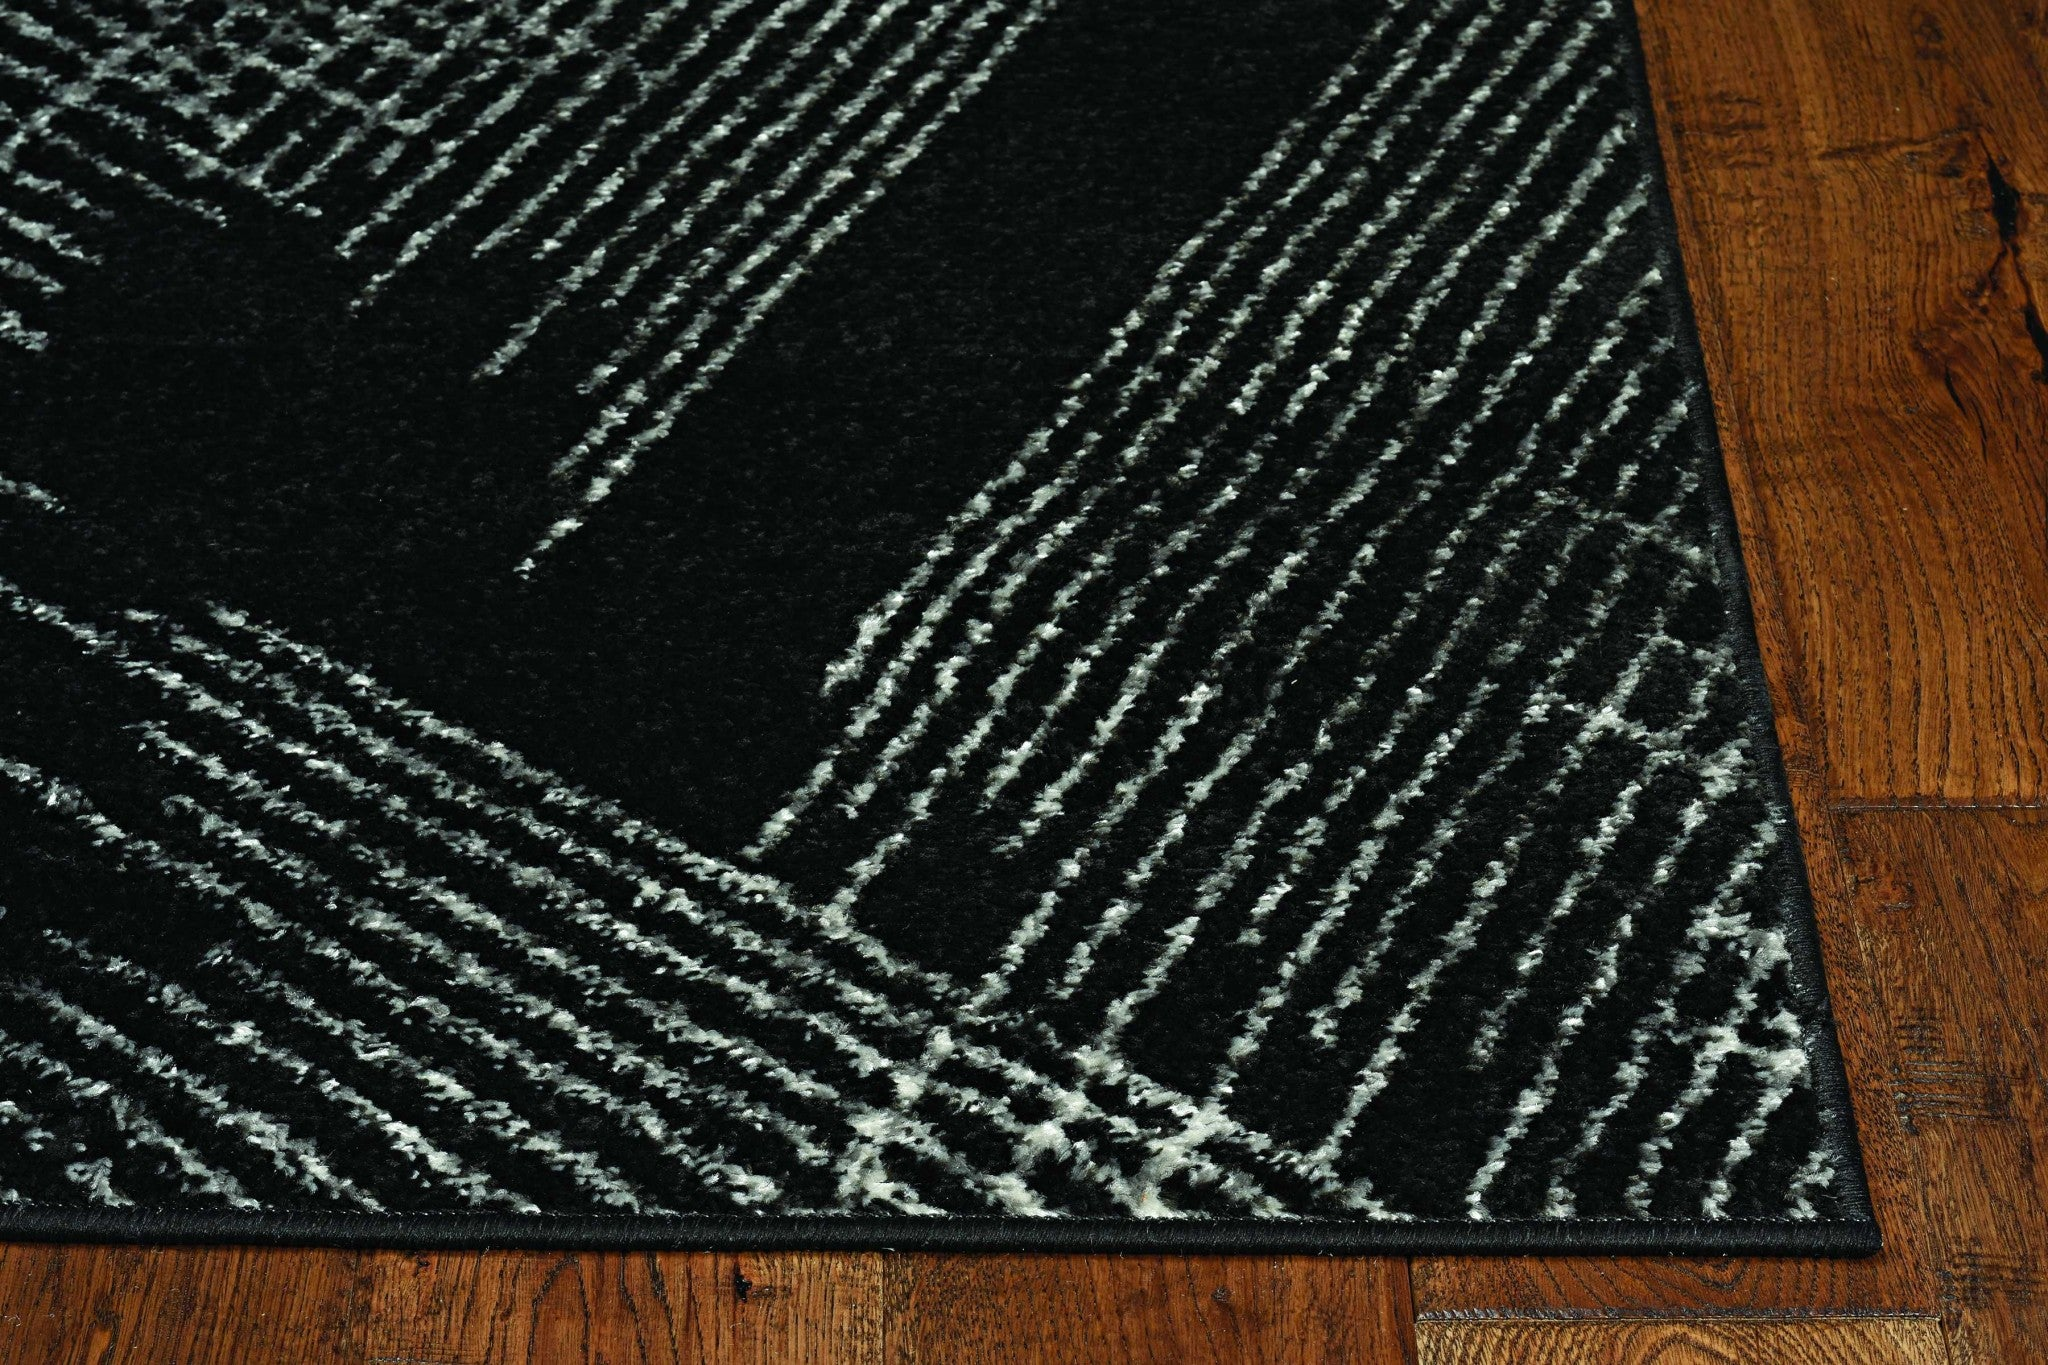 9'x13' Teal Blue Machine Woven Abstract Lines Indoor Area Rug